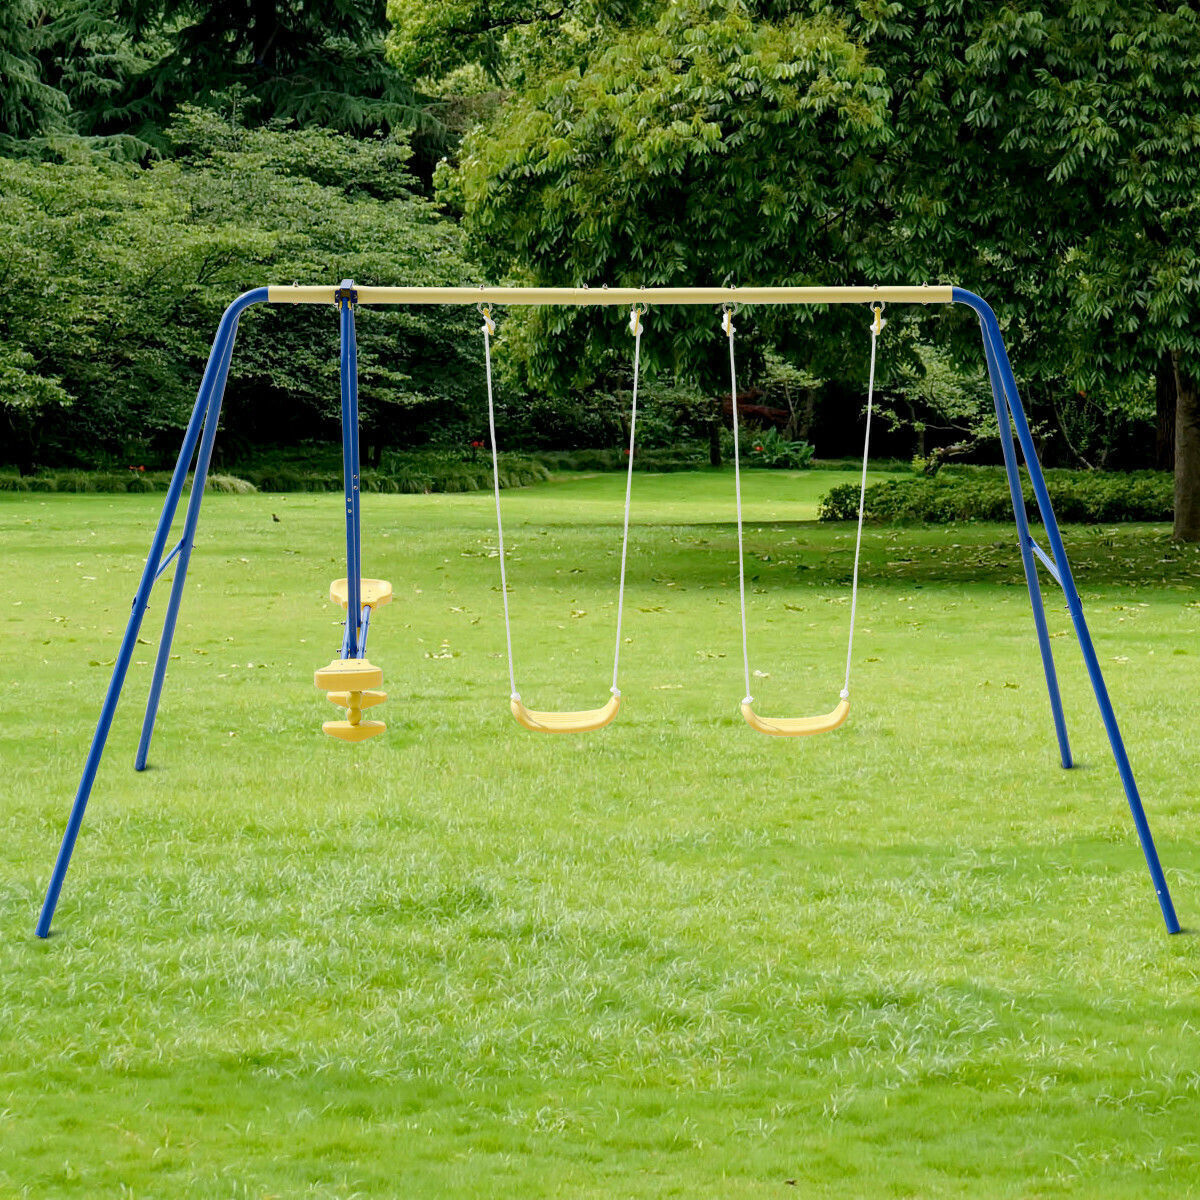 Metal Swing Set for Backyard Outdoor Playground for 4 Childr